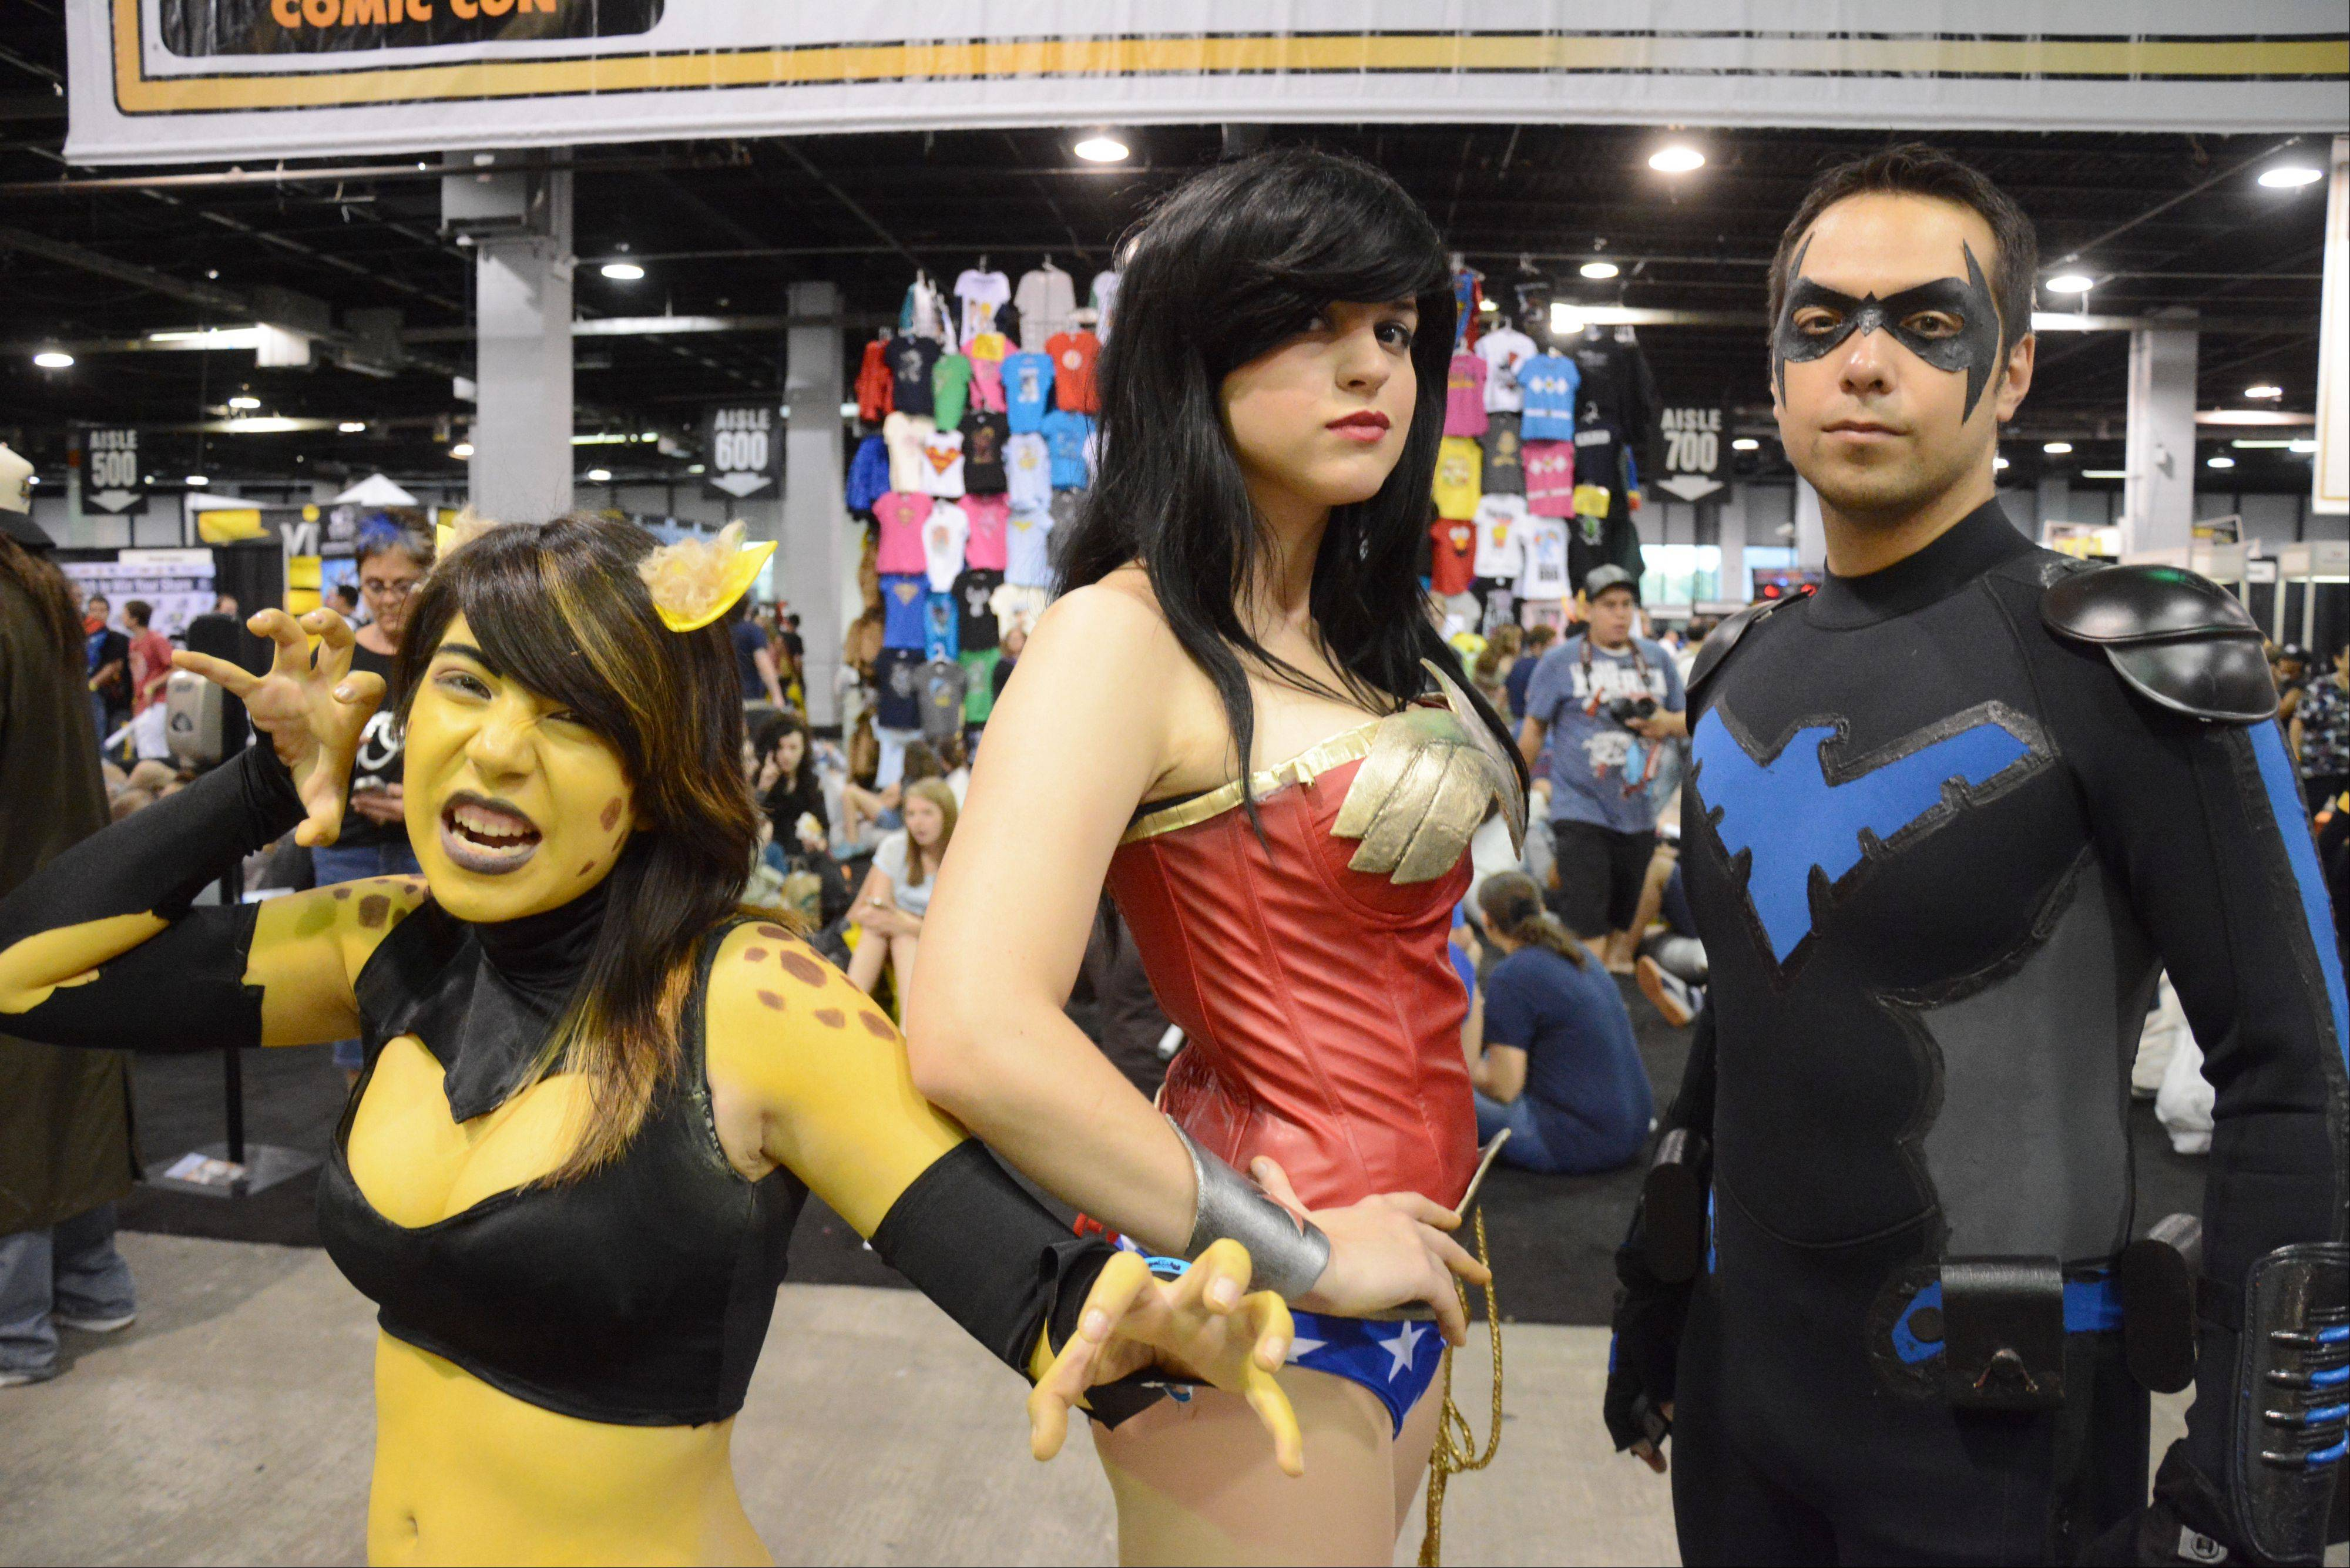 From left, Alexandra Vasquez, Bevan Sukowaty and Dante Drake, all of Chicago, dressed up as various comic book characters at Comic Con held at the Donald E. Stephens Convention Center in Rosemont.